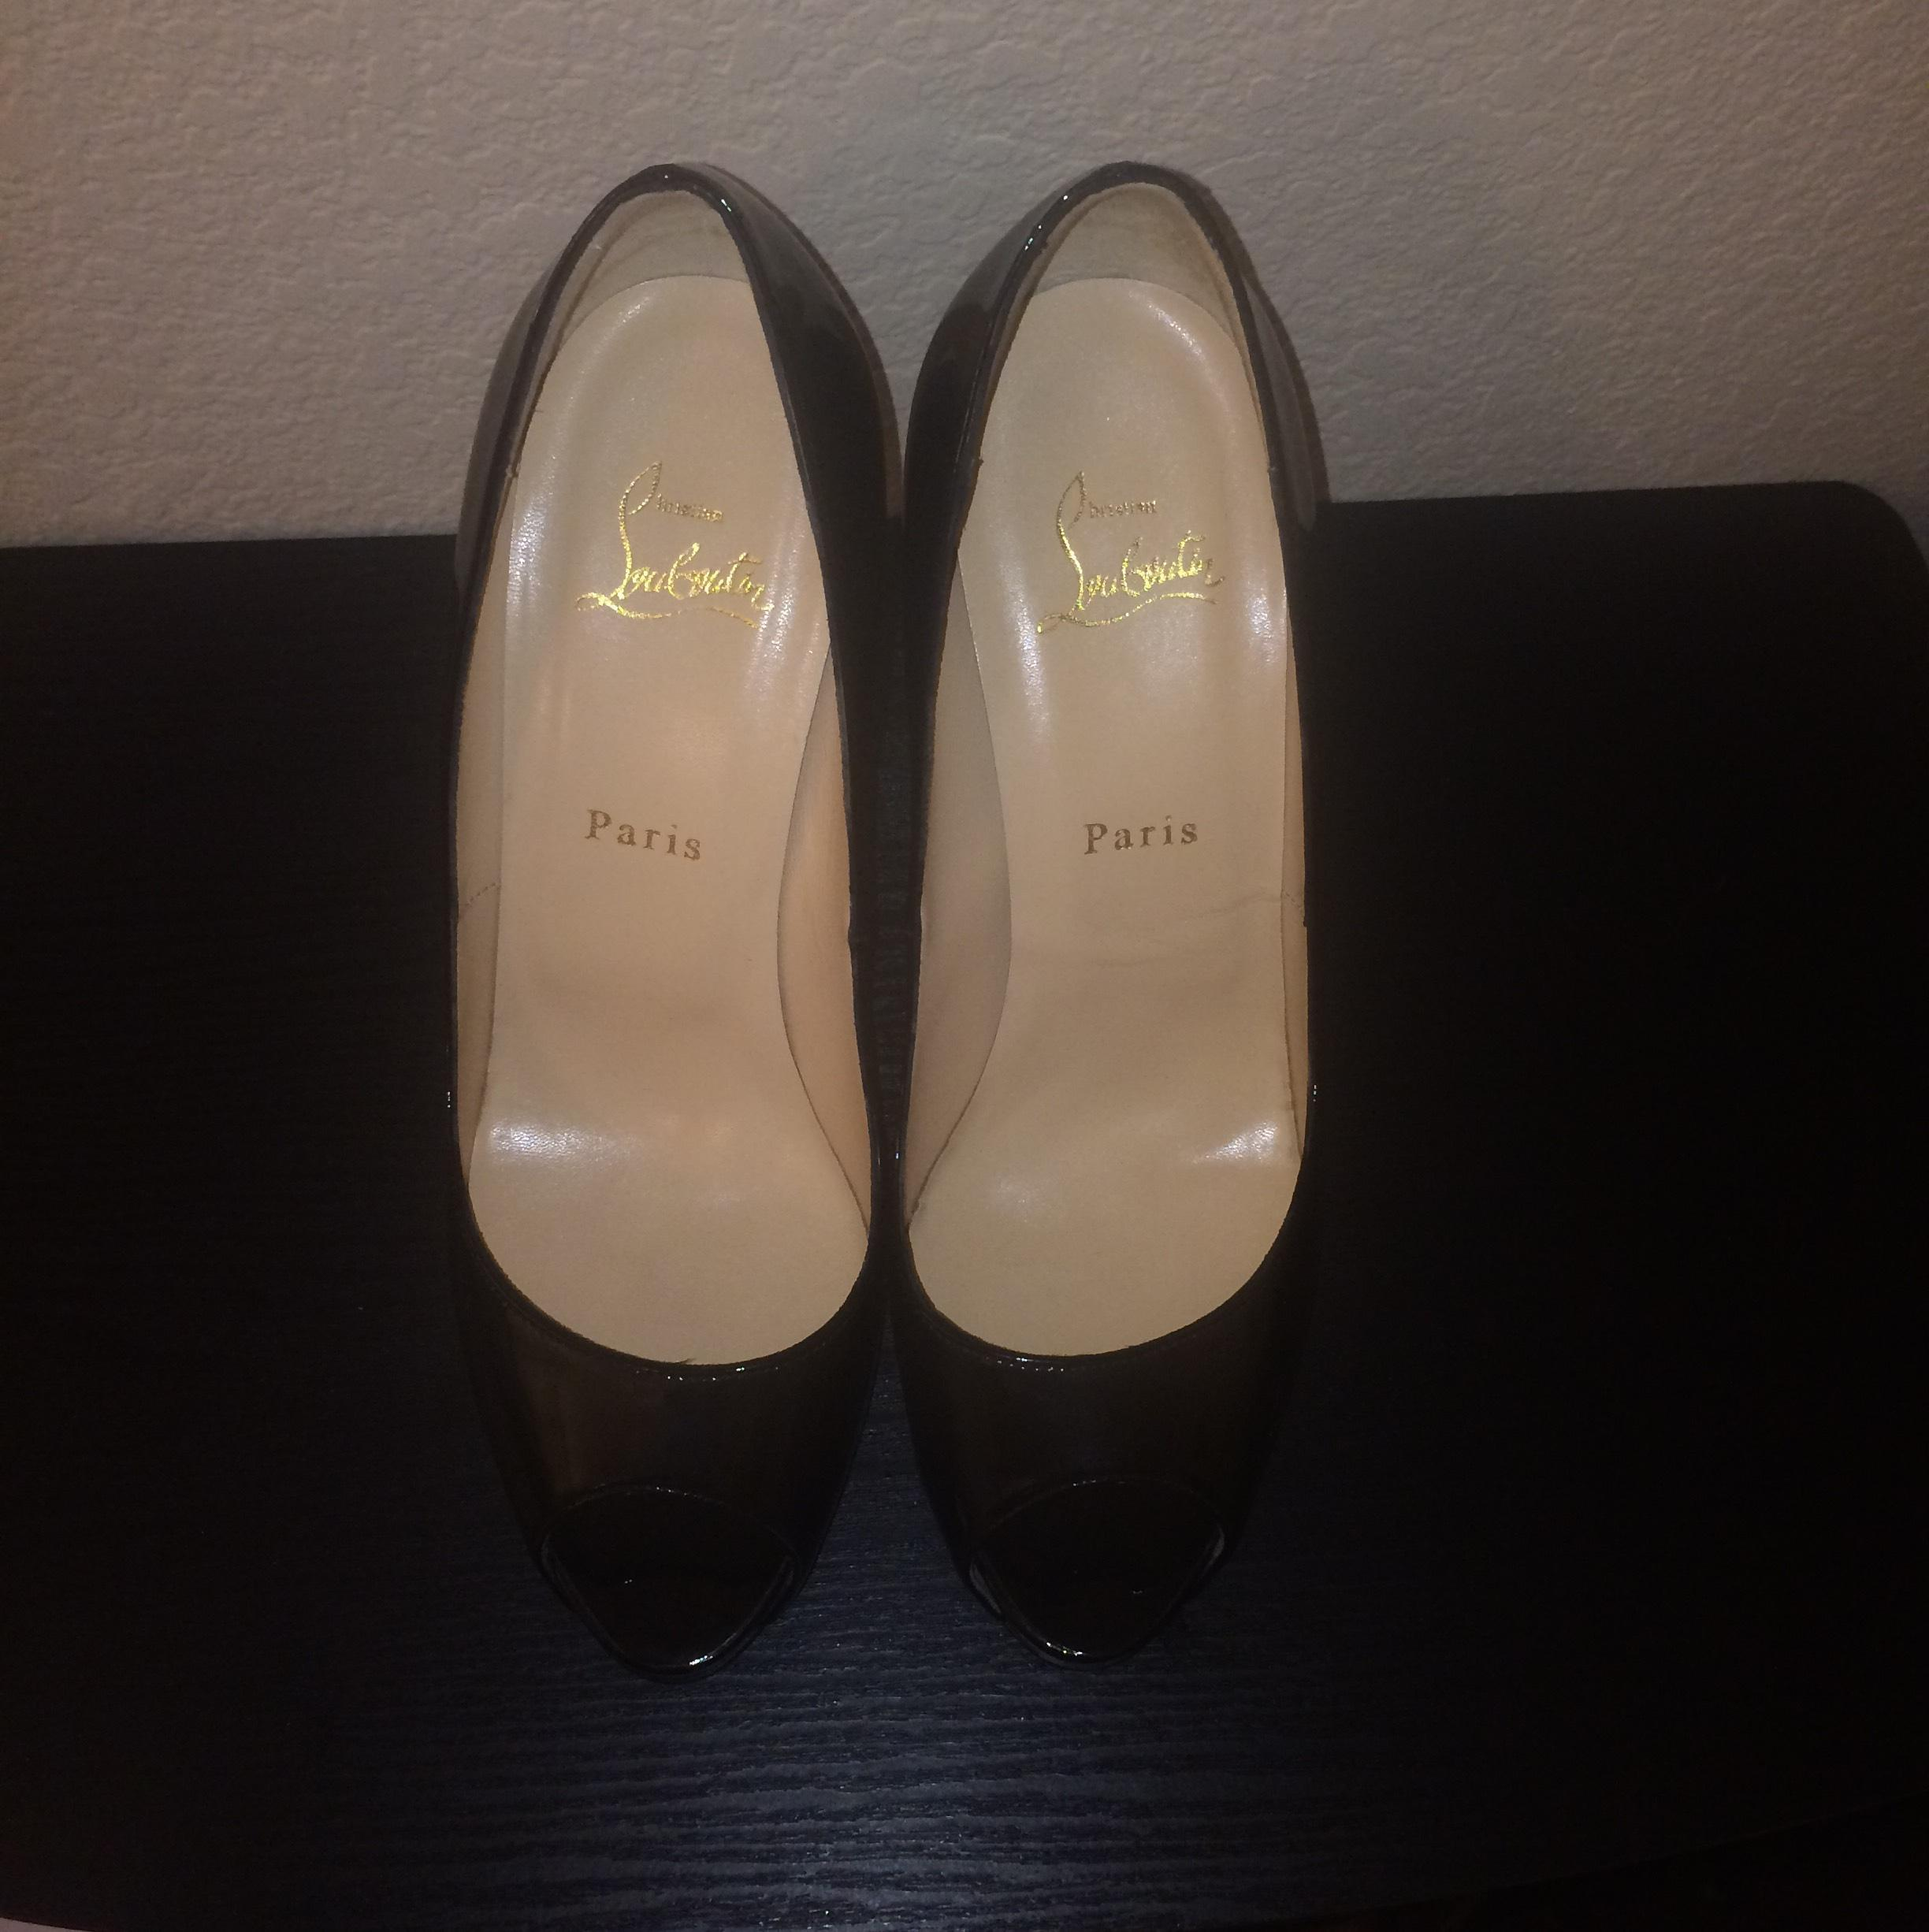 614d552ae3ed ... Christian Louboutin Blac Very Prive Patent Leather Platforms Size Size  Size US 9.5 Regular (M ...